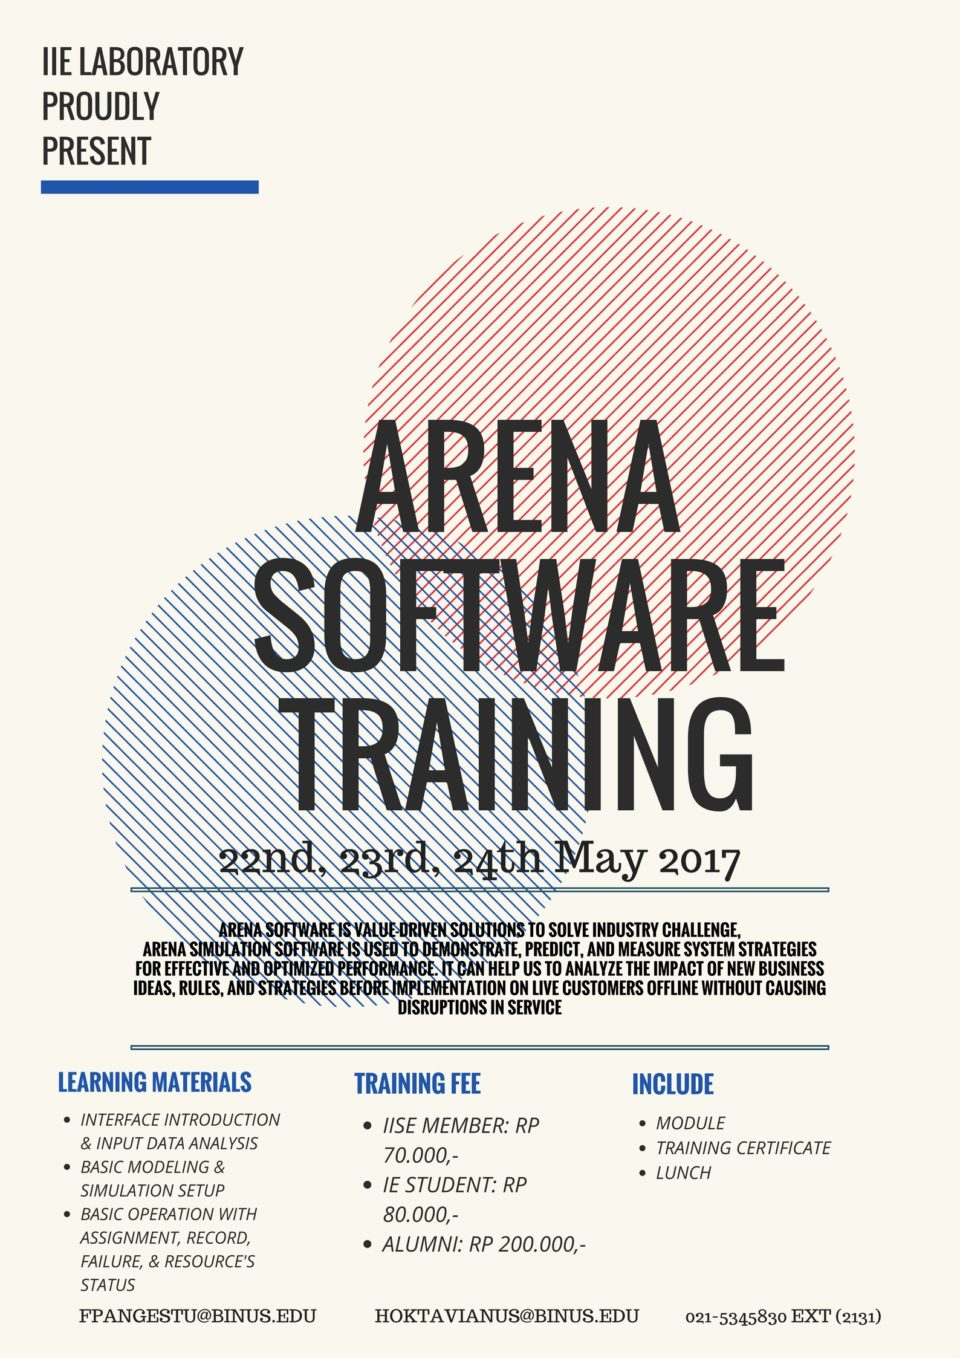 ARENA SOFTWARE TRAINING 2017